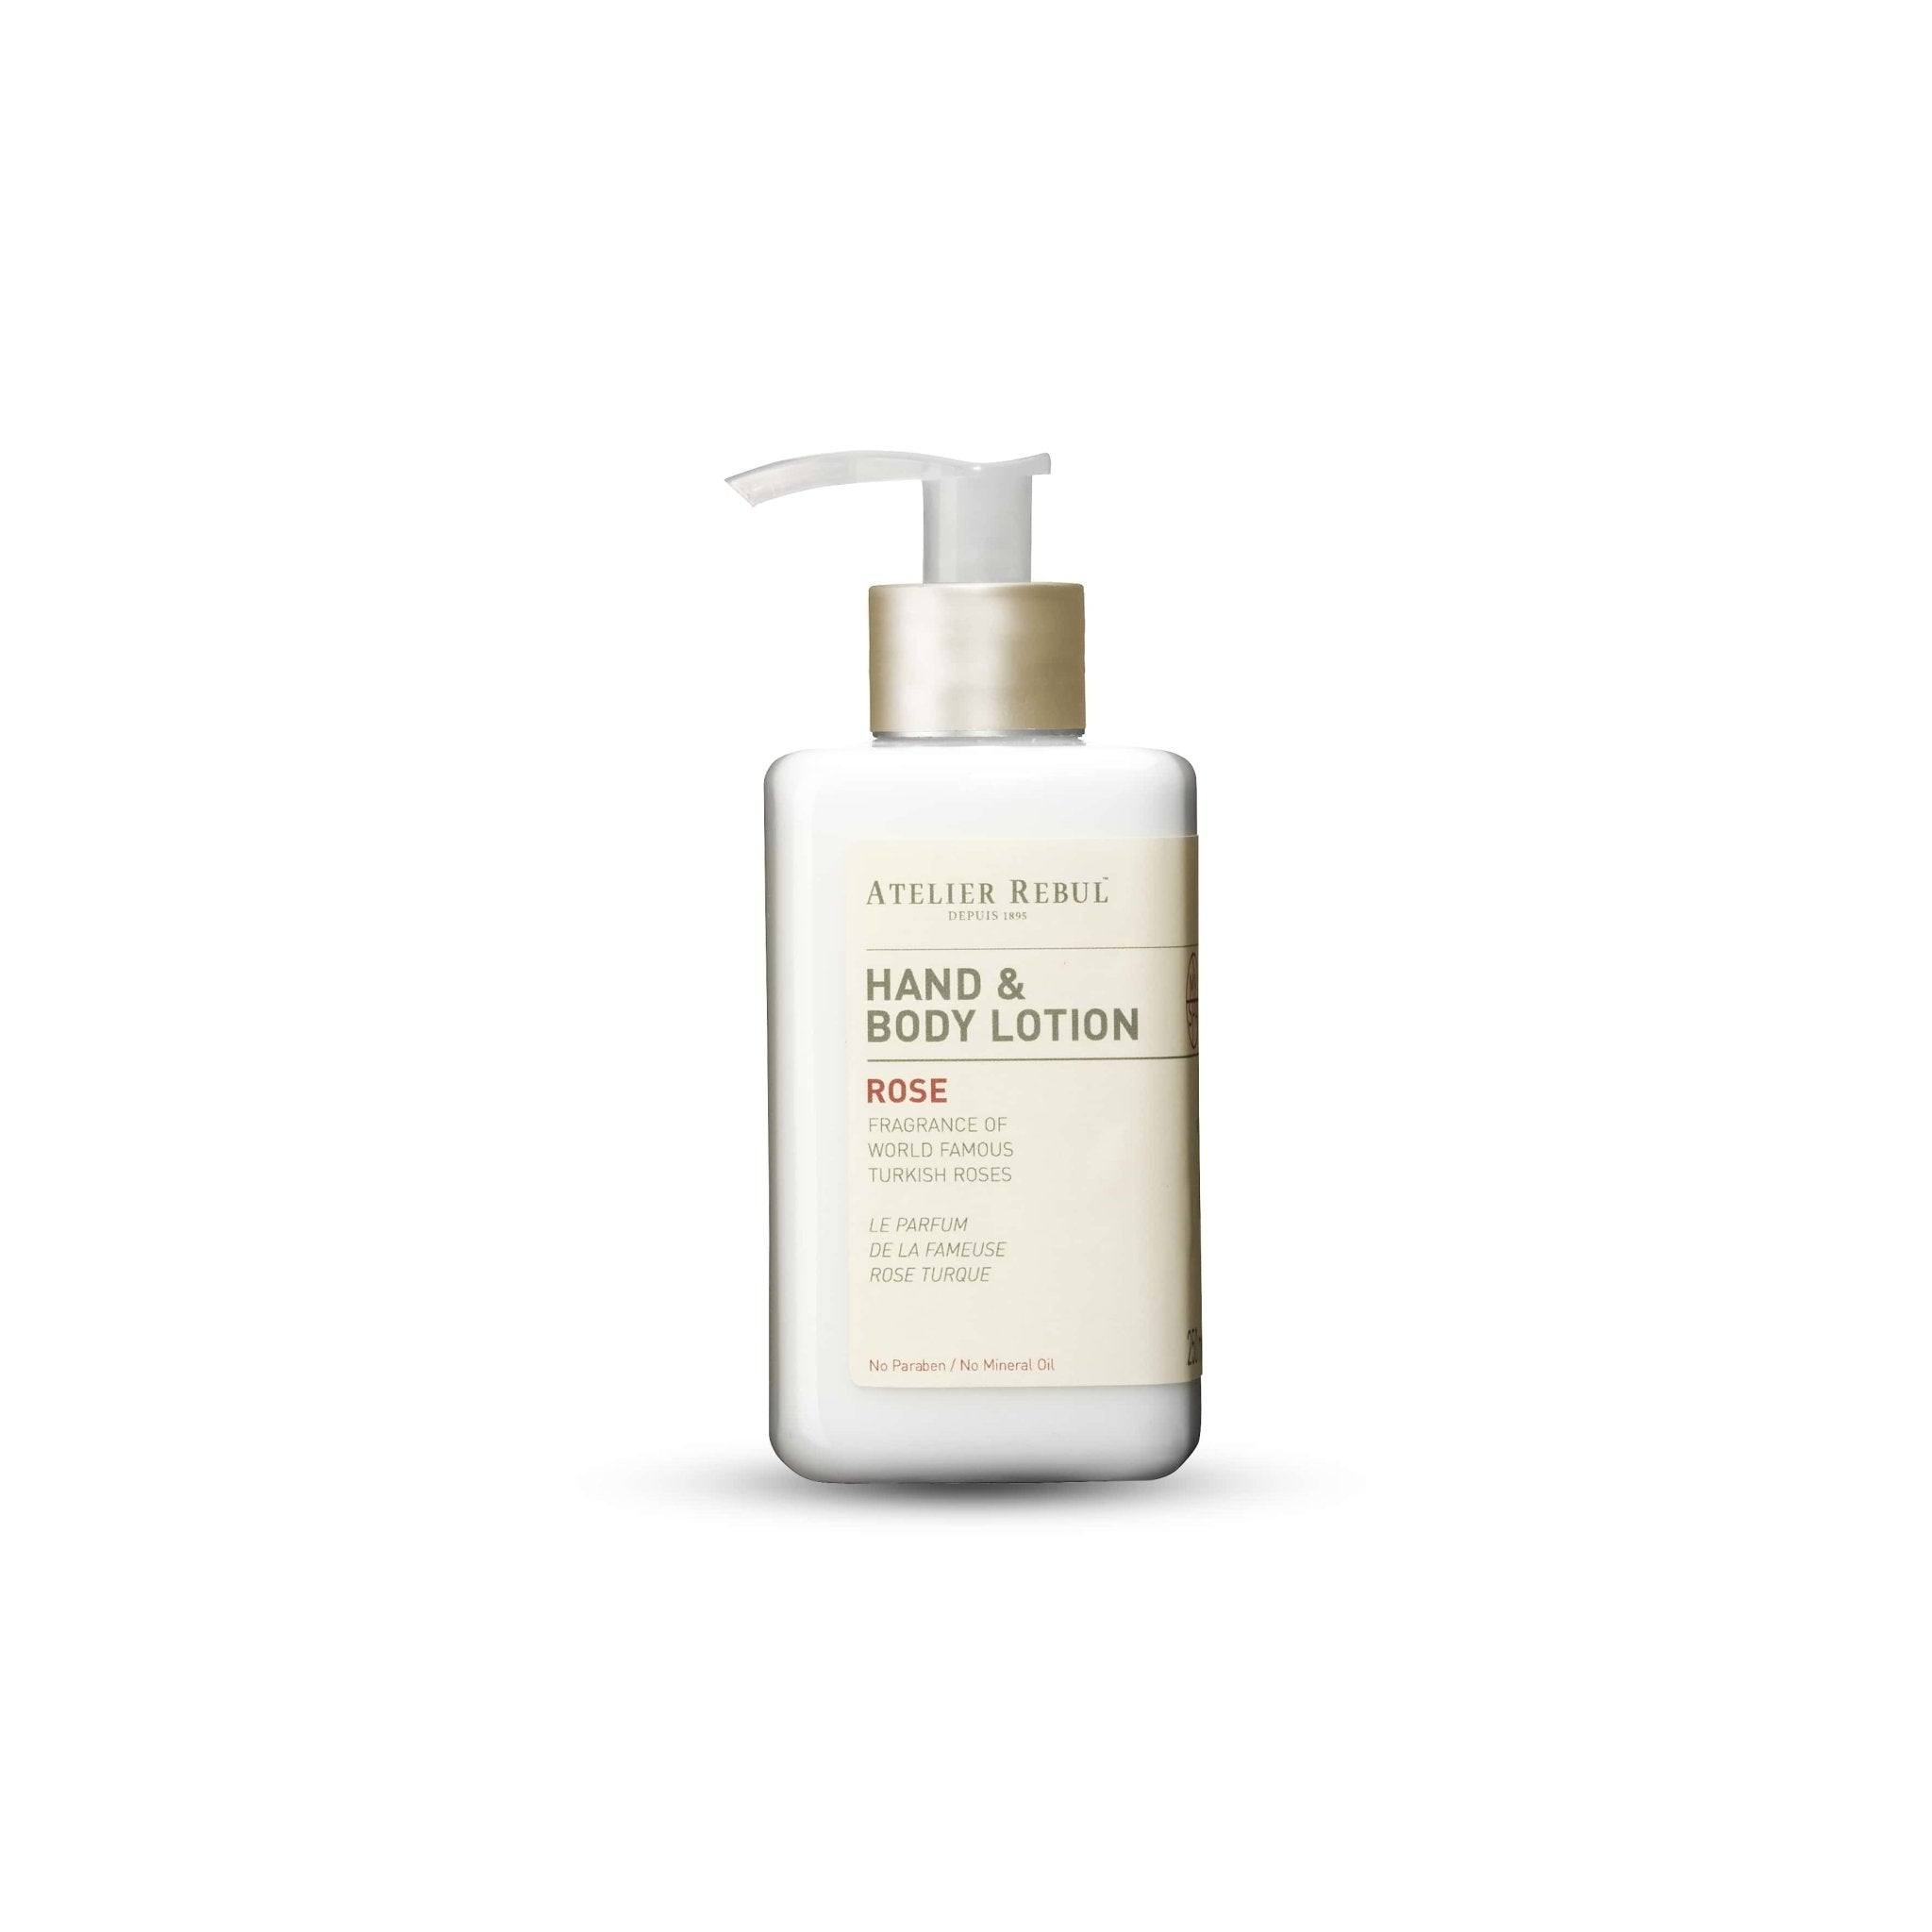 Rose Hand & Body Lotion 250ml - Atelier Rebul